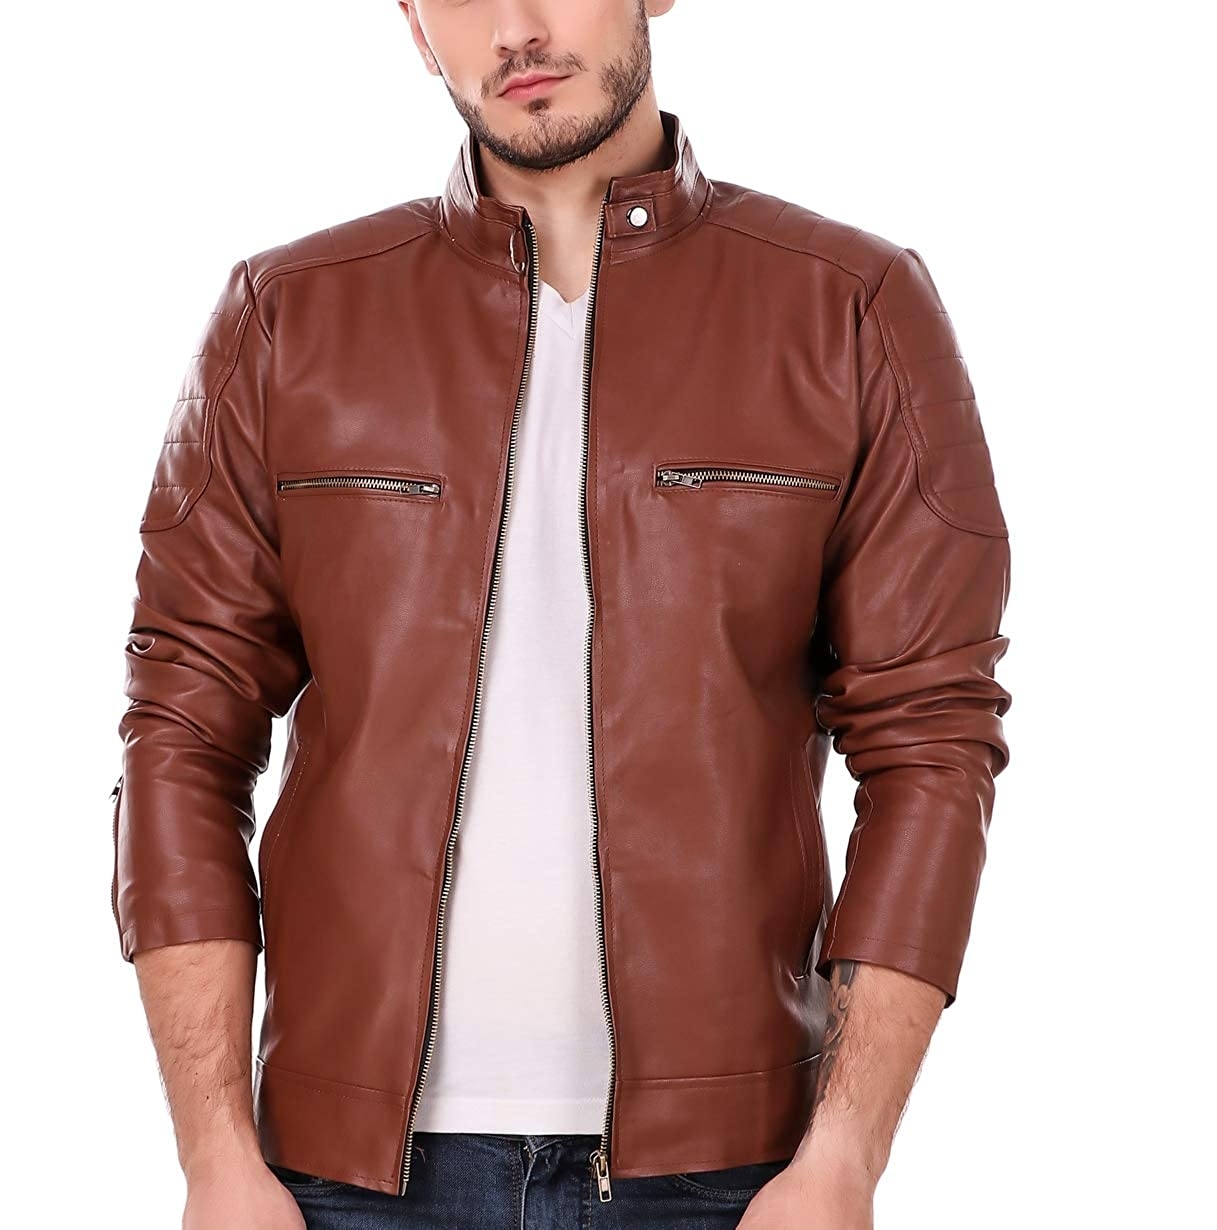 Buy Leather Retail Tan Solid Biker Jacket For Man At Amazon In